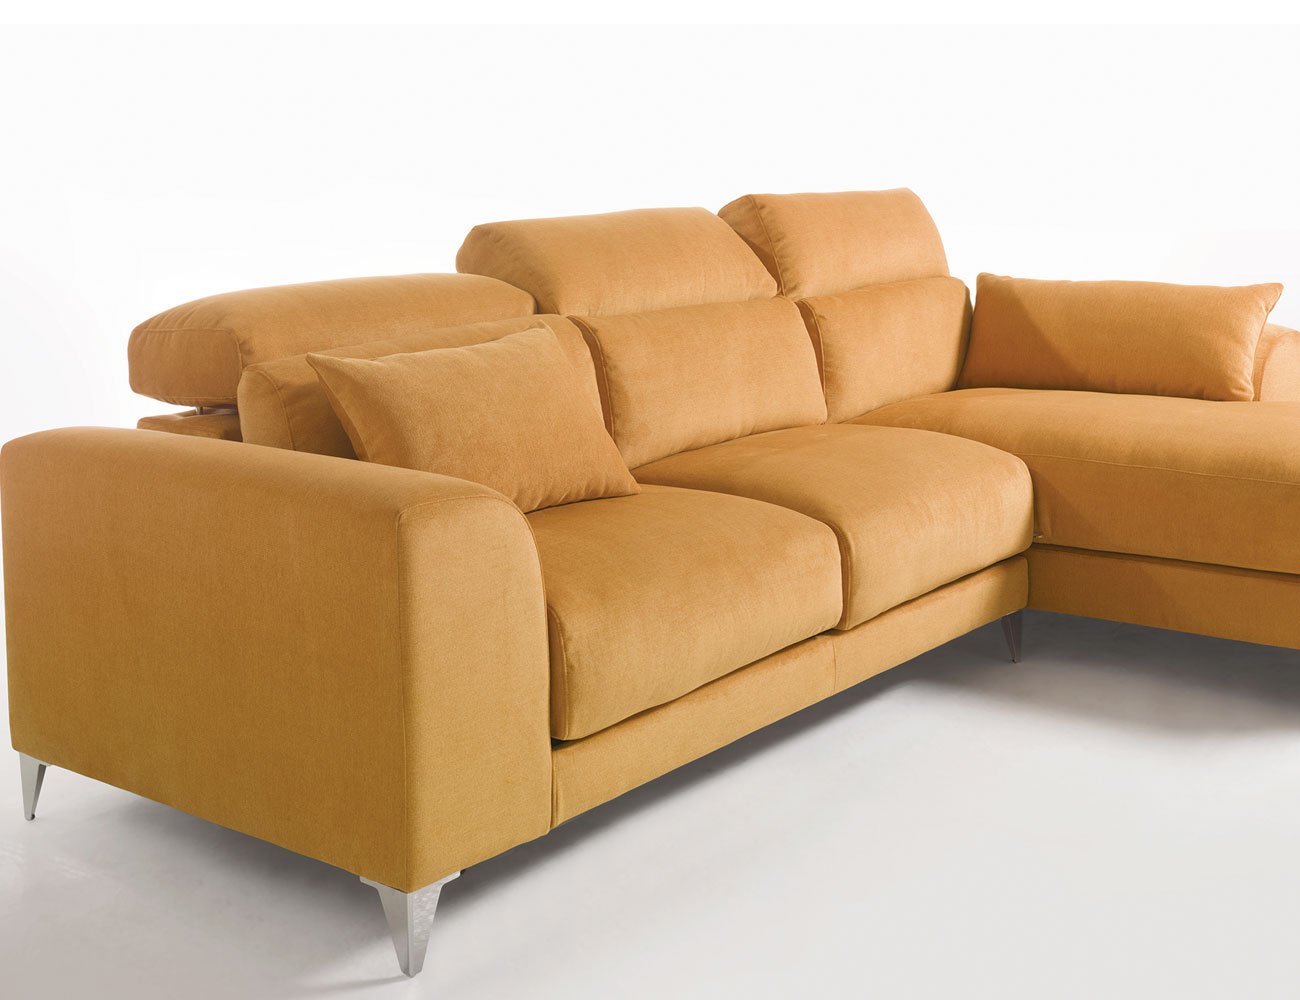 Sofa chaiselongue gran lujo decorativo patas altas amarillo 24